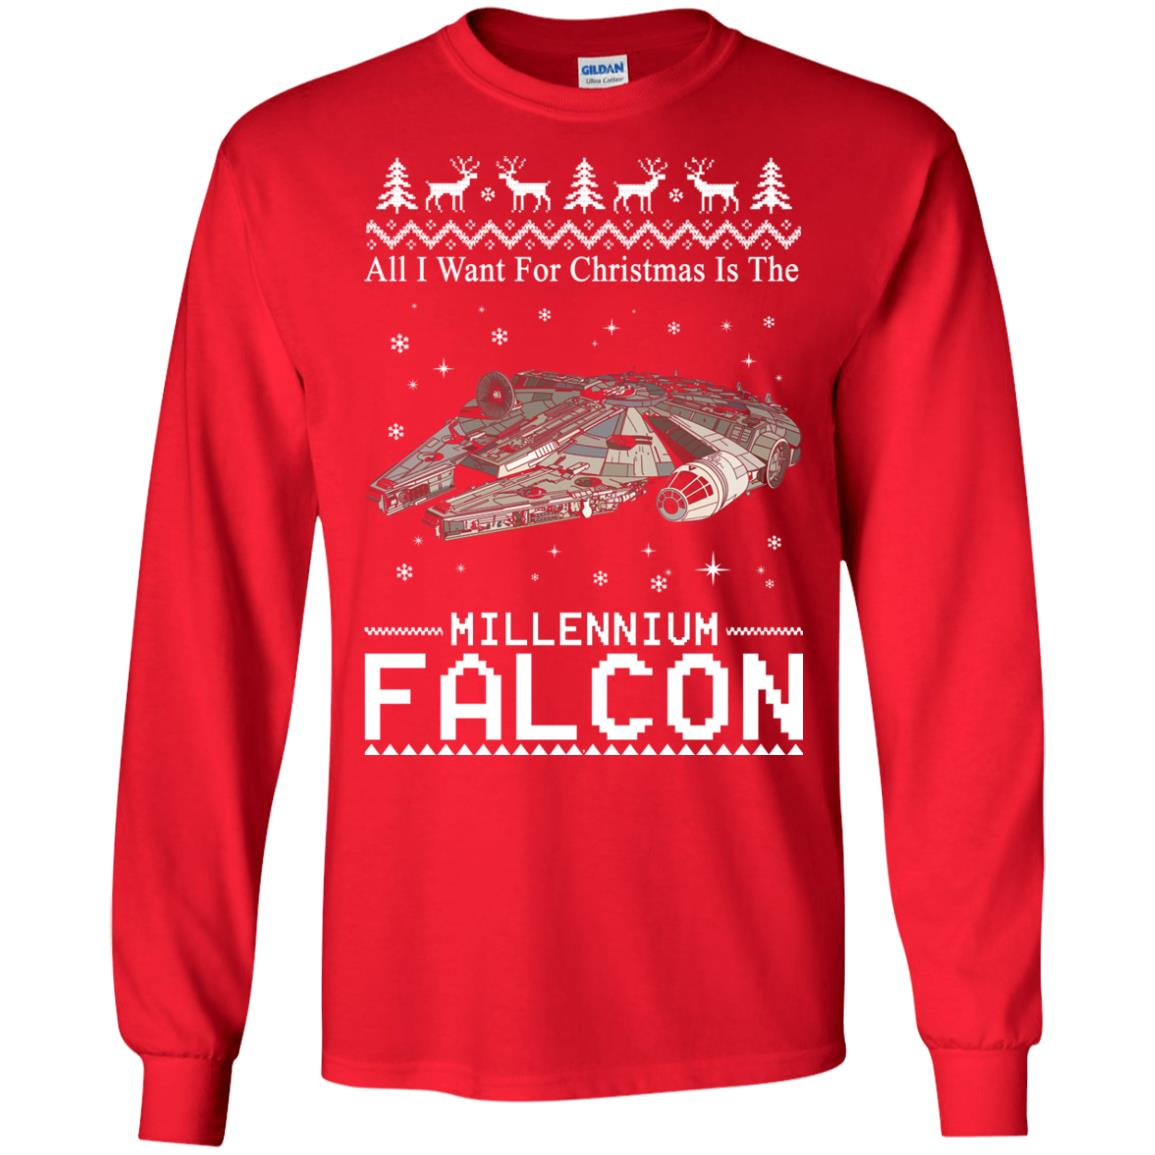 image 2133 - All I Want For Christmas is The Millennium Falcon Sweater, Ugly Sweatshirt